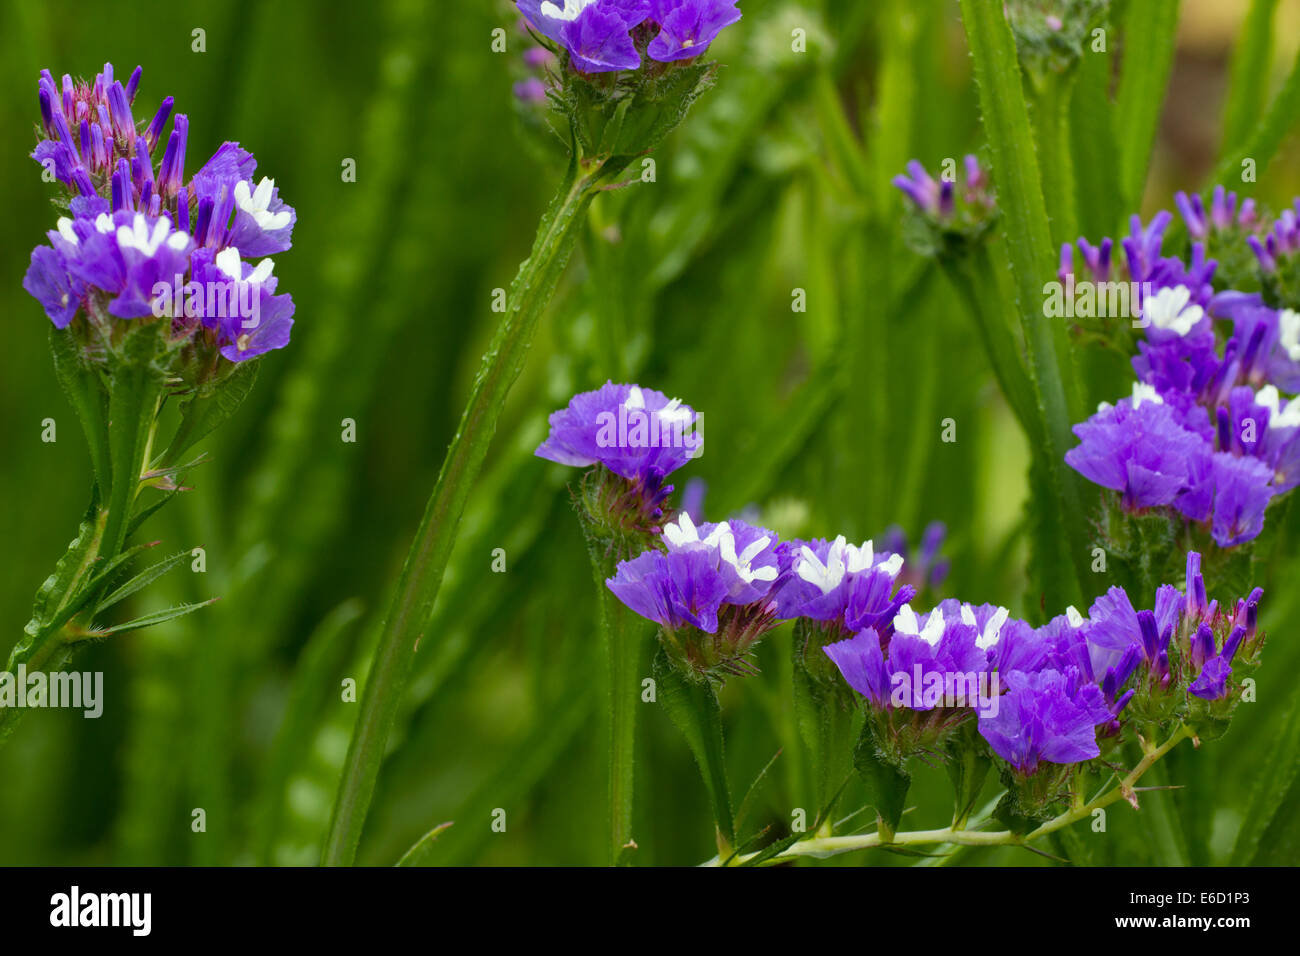 Flowers of the annual Statice, Limonium sinuatum 'Sky Blue' - Stock Image